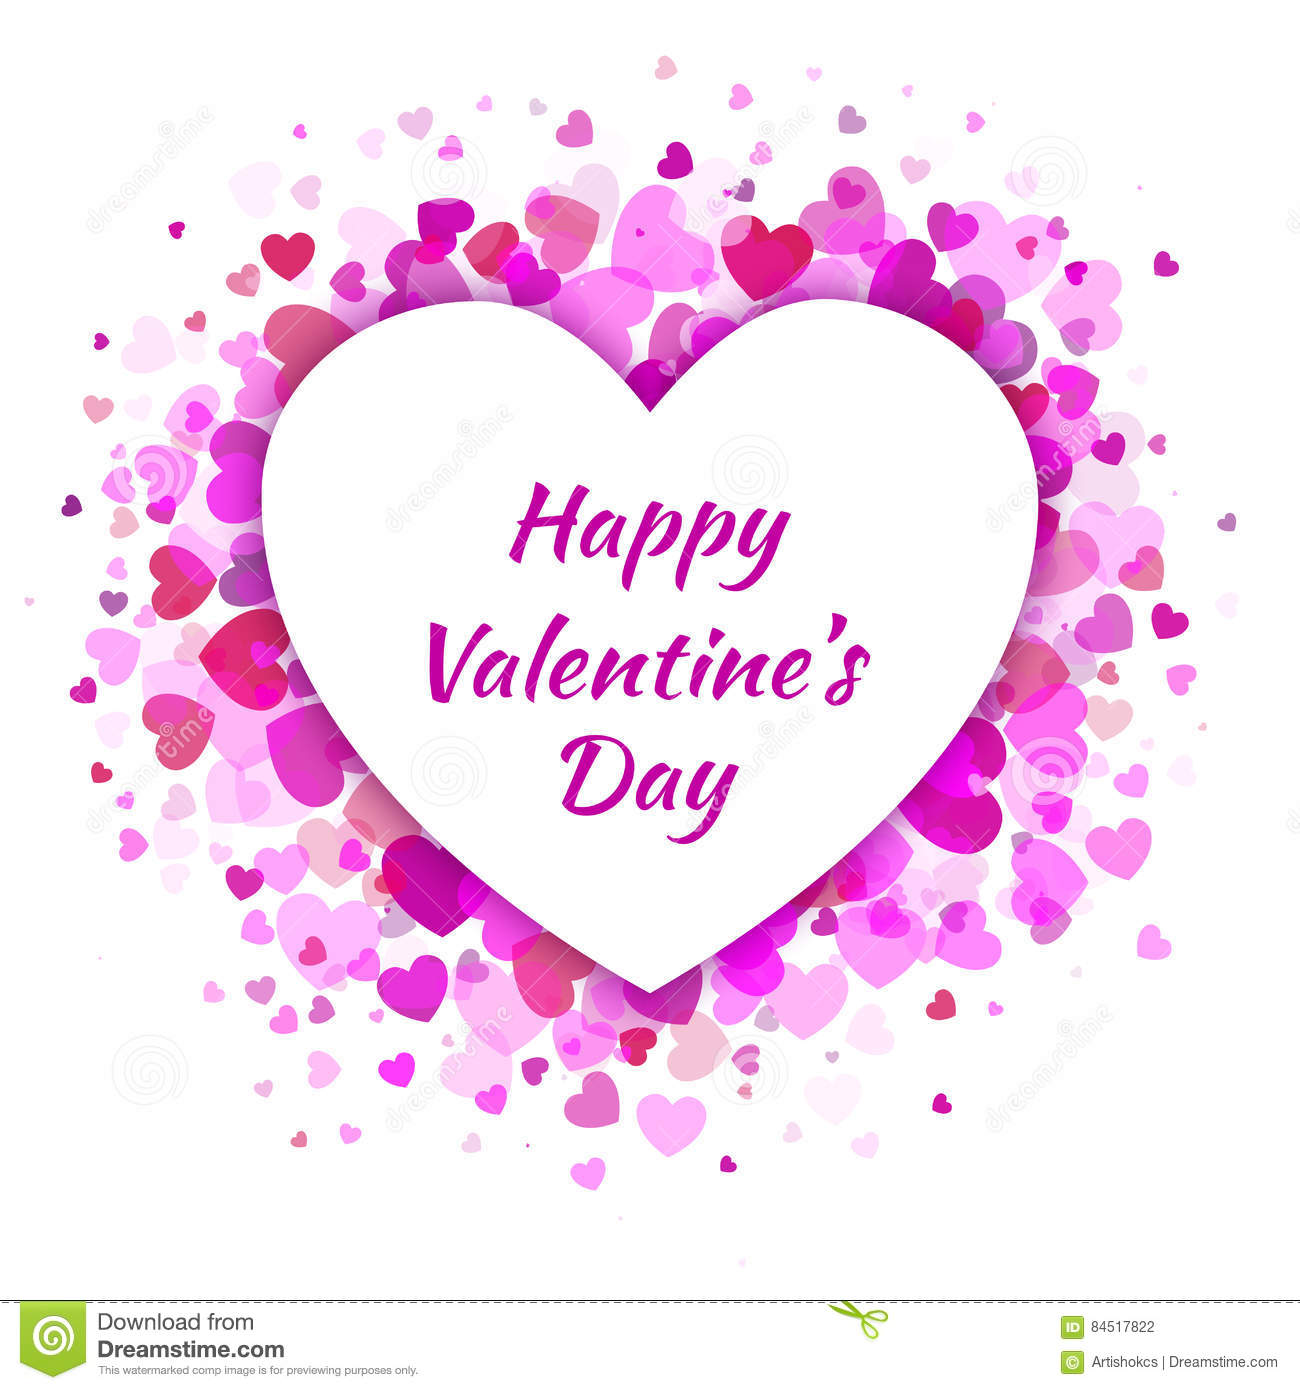 Vector Heart With Light Pink Hearts Valentines Day Card Background